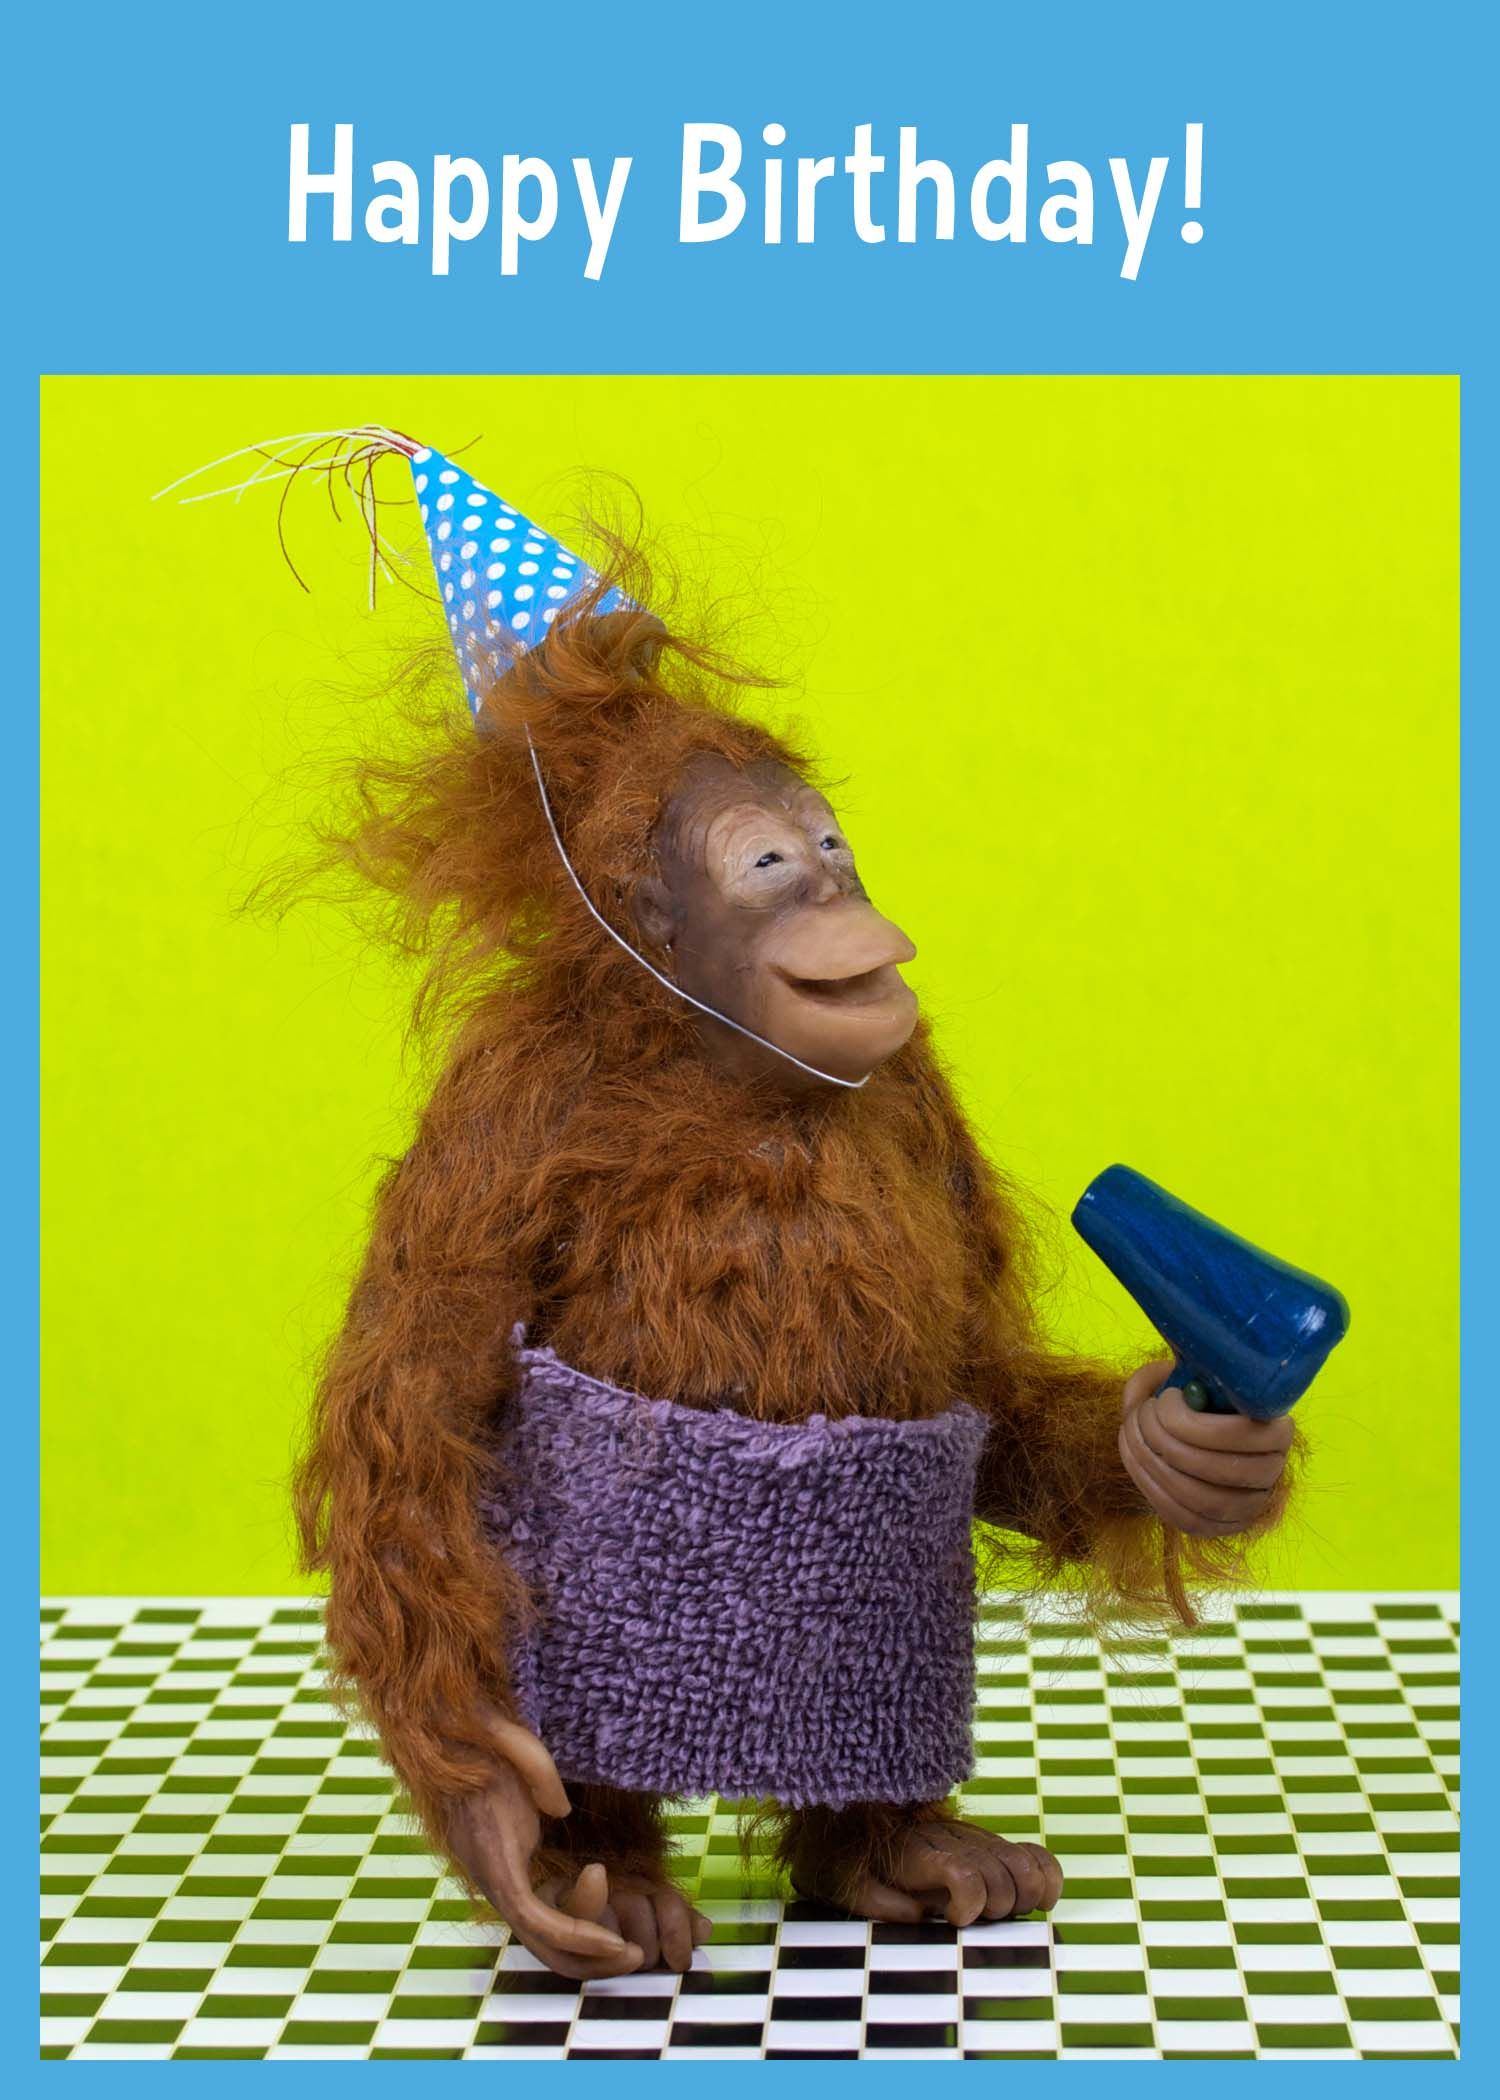 Happy Birthday Orangutan Greeting Card Design Made From Polymer Clay And Lambswool Ww Funny Happy Birthday Wishes Birthday Wishes Birthday Wishes For Sister